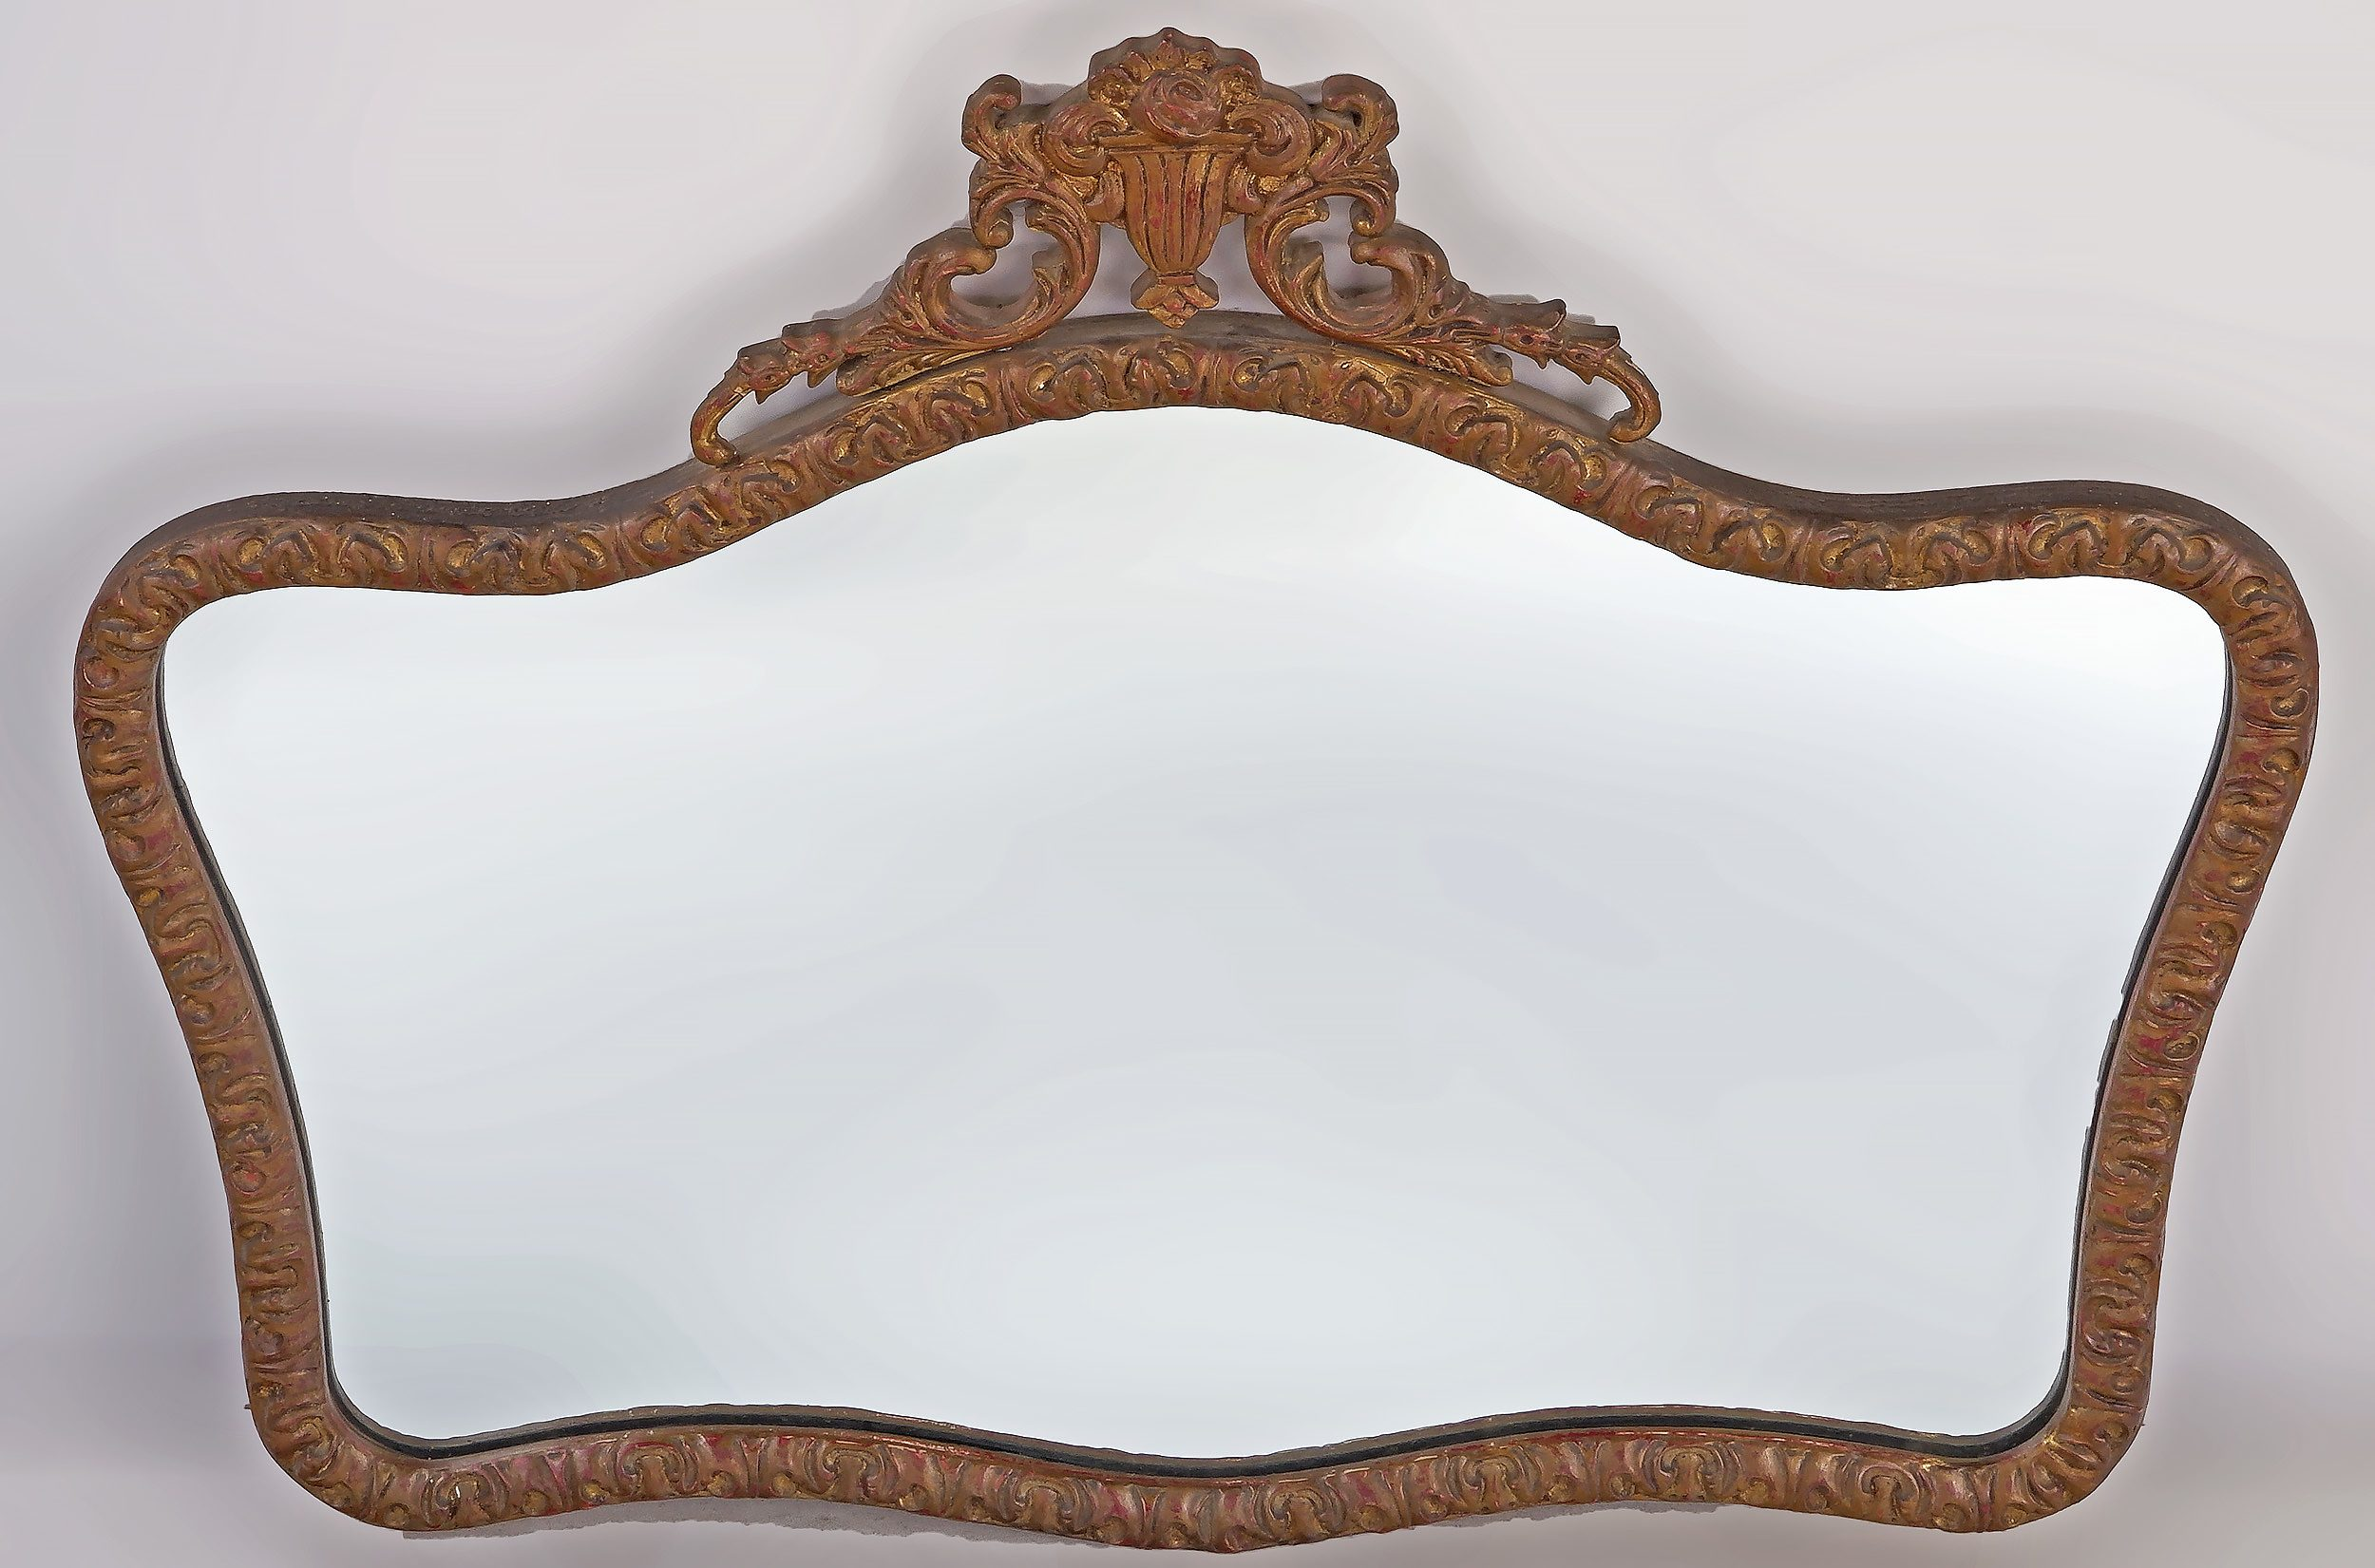 'Vintage Mirror with Carved Wood and Moulded Gesso Frame '